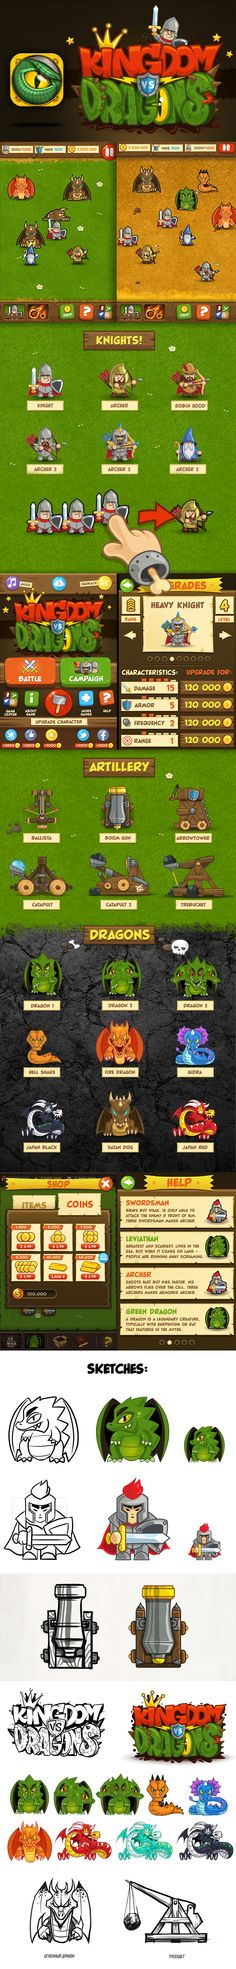 Kingdom vs. Dragons game user interface gui ui | Create your own roleplaying game material w/ RPG Bard: www.rpgbard.com | Writing inspiration for Dungeons and Dragons DND D&D Pathfinder PFRPG Warhammer 40k Star Wars Shadowrun Call of Cthulhu Lord of the Rings LoTR + d20 fantasy science fiction scifi horror design | Not Trusty Sword art: click artwork for source